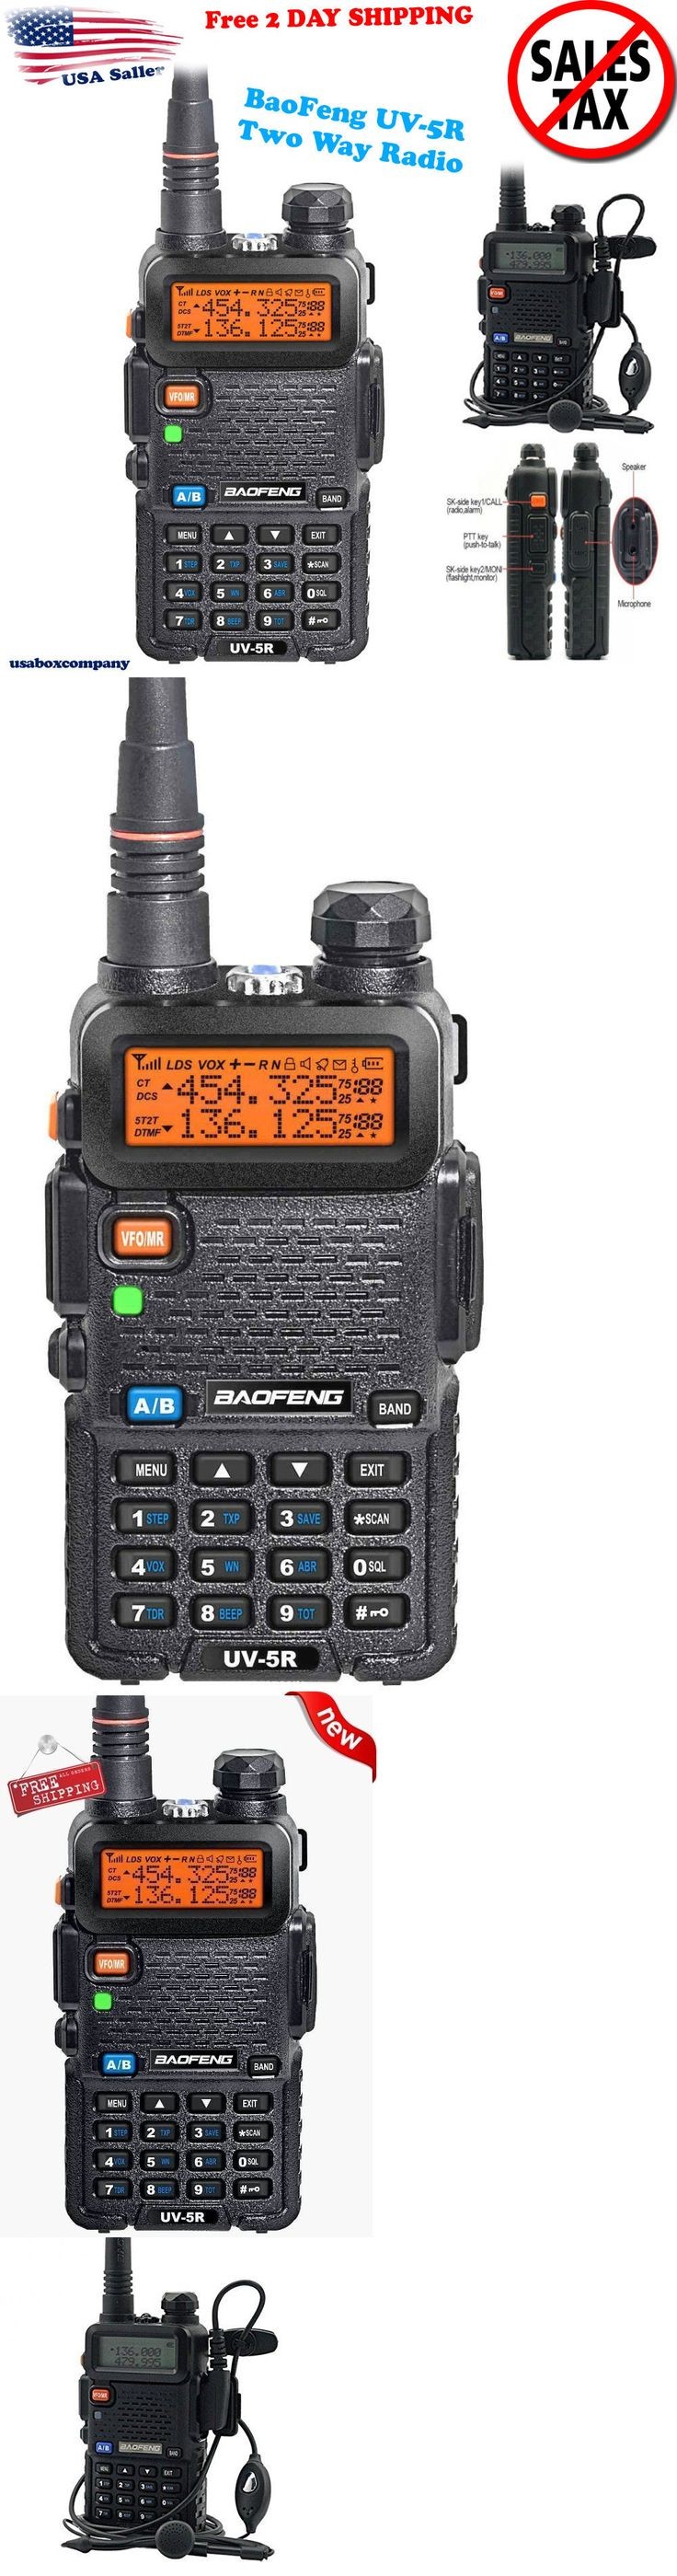 Scanners: Police Radio Scanner Handheld Fire Transceiver Digital Two Way Portable Antenna -> BUY IT NOW ONLY: $32.49 on eBay!